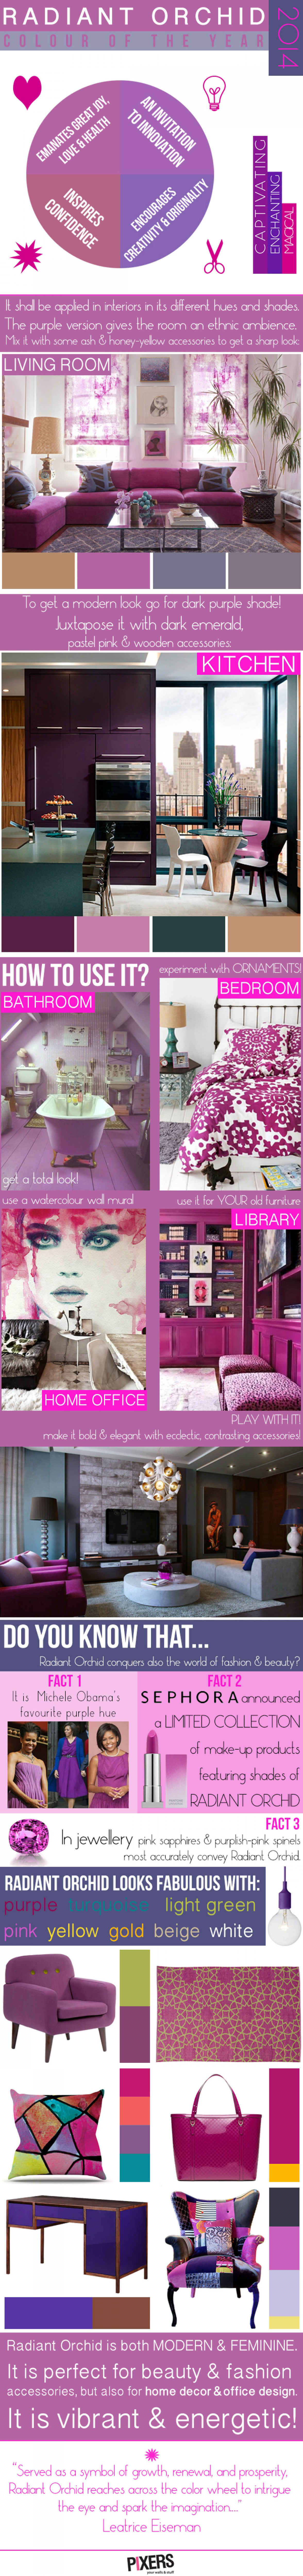 11 The Ultimate Guide To Radiant Orchid 5303530cb246c W1500